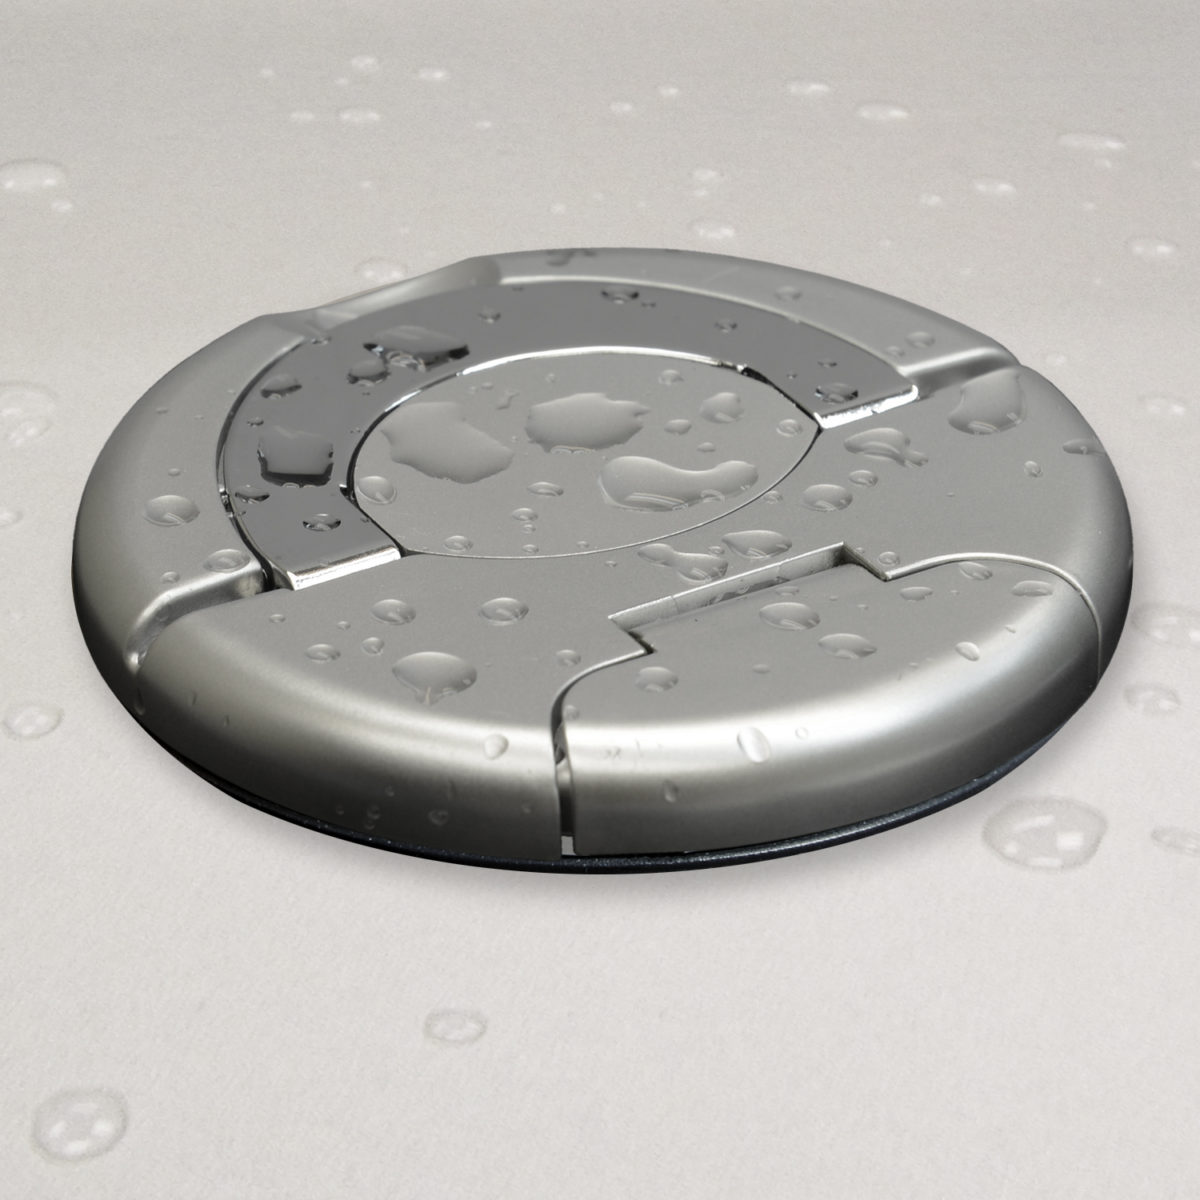 Waterproof – Pop up socket with 3 Socket & Dual USB-A charger